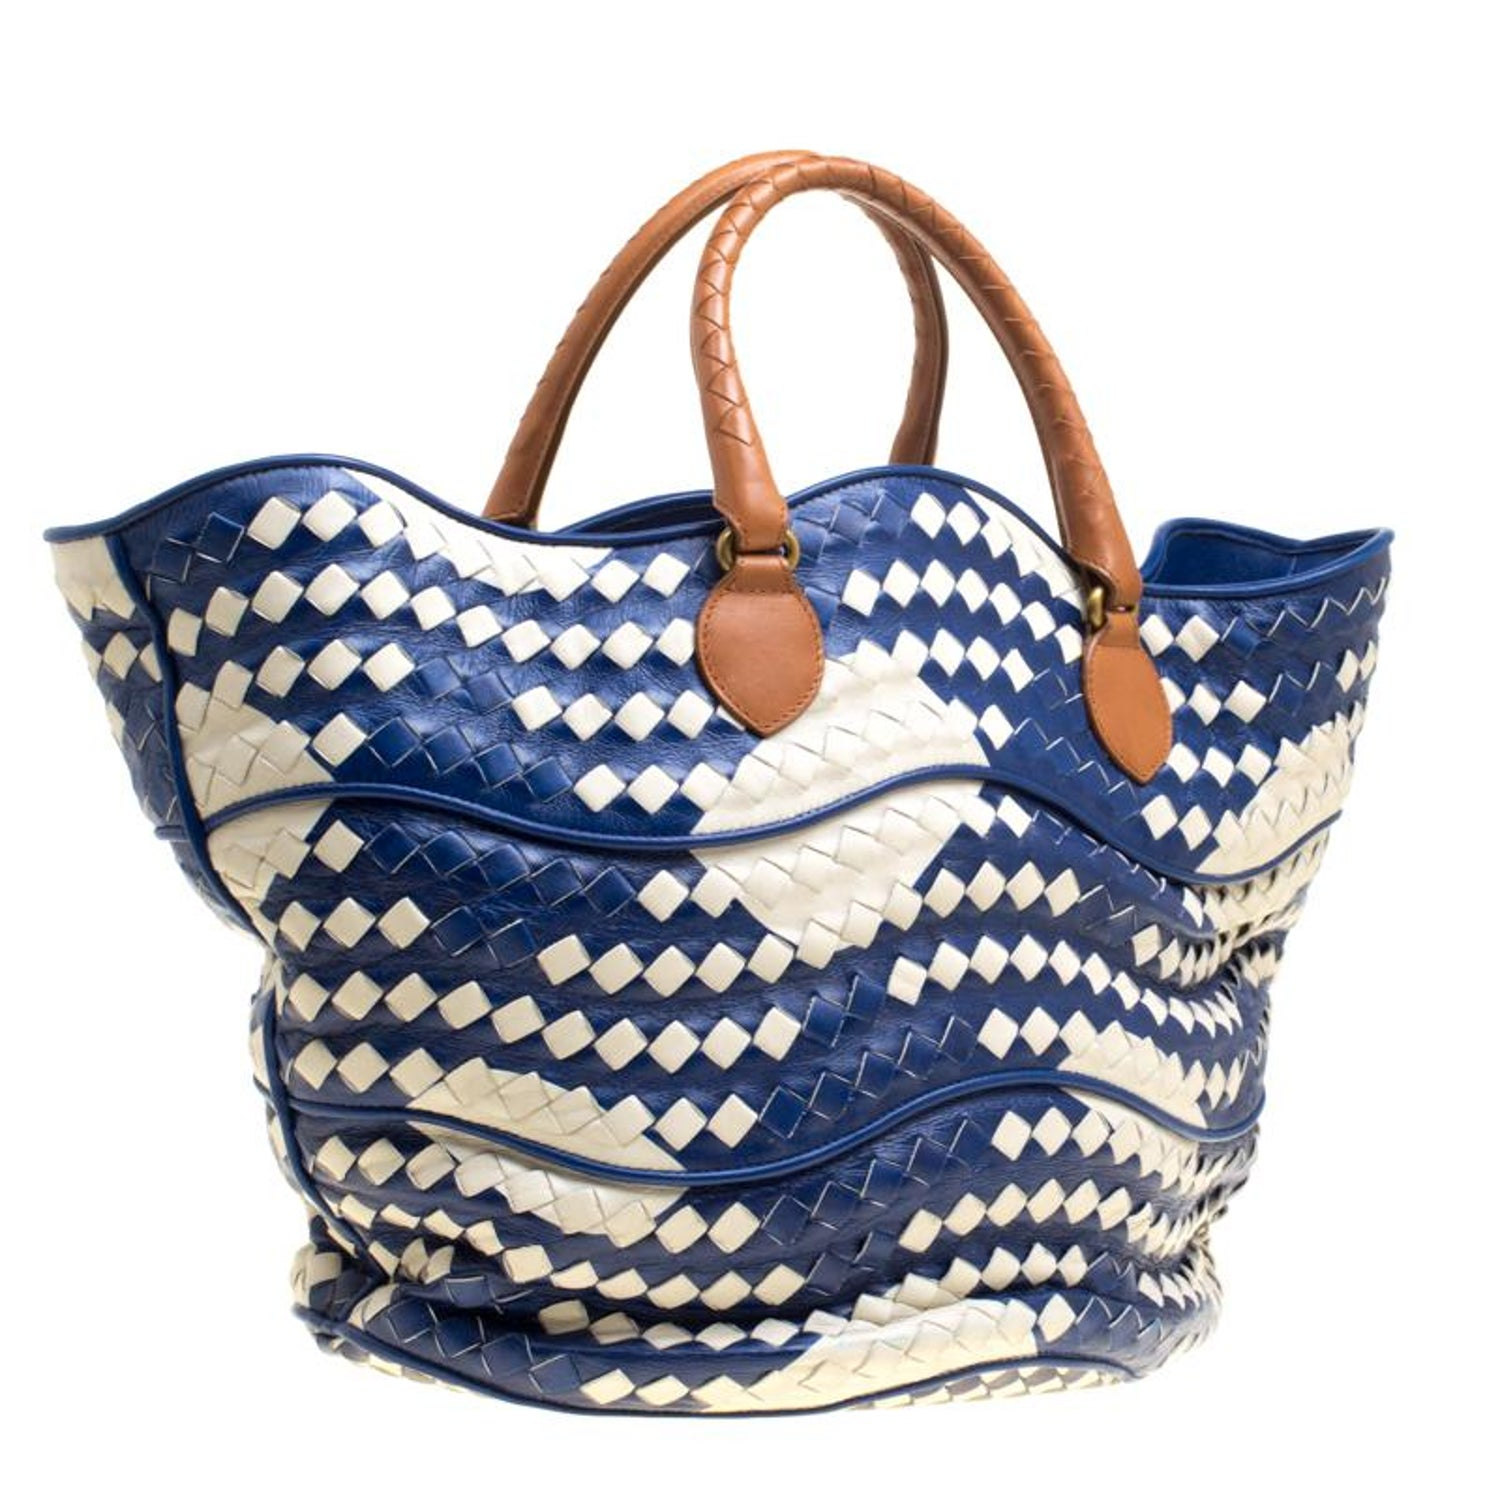 38049a19681e Bottega Veneta Blue White Intrecciato Leather Bucket Bag For Sale at 1stdibs